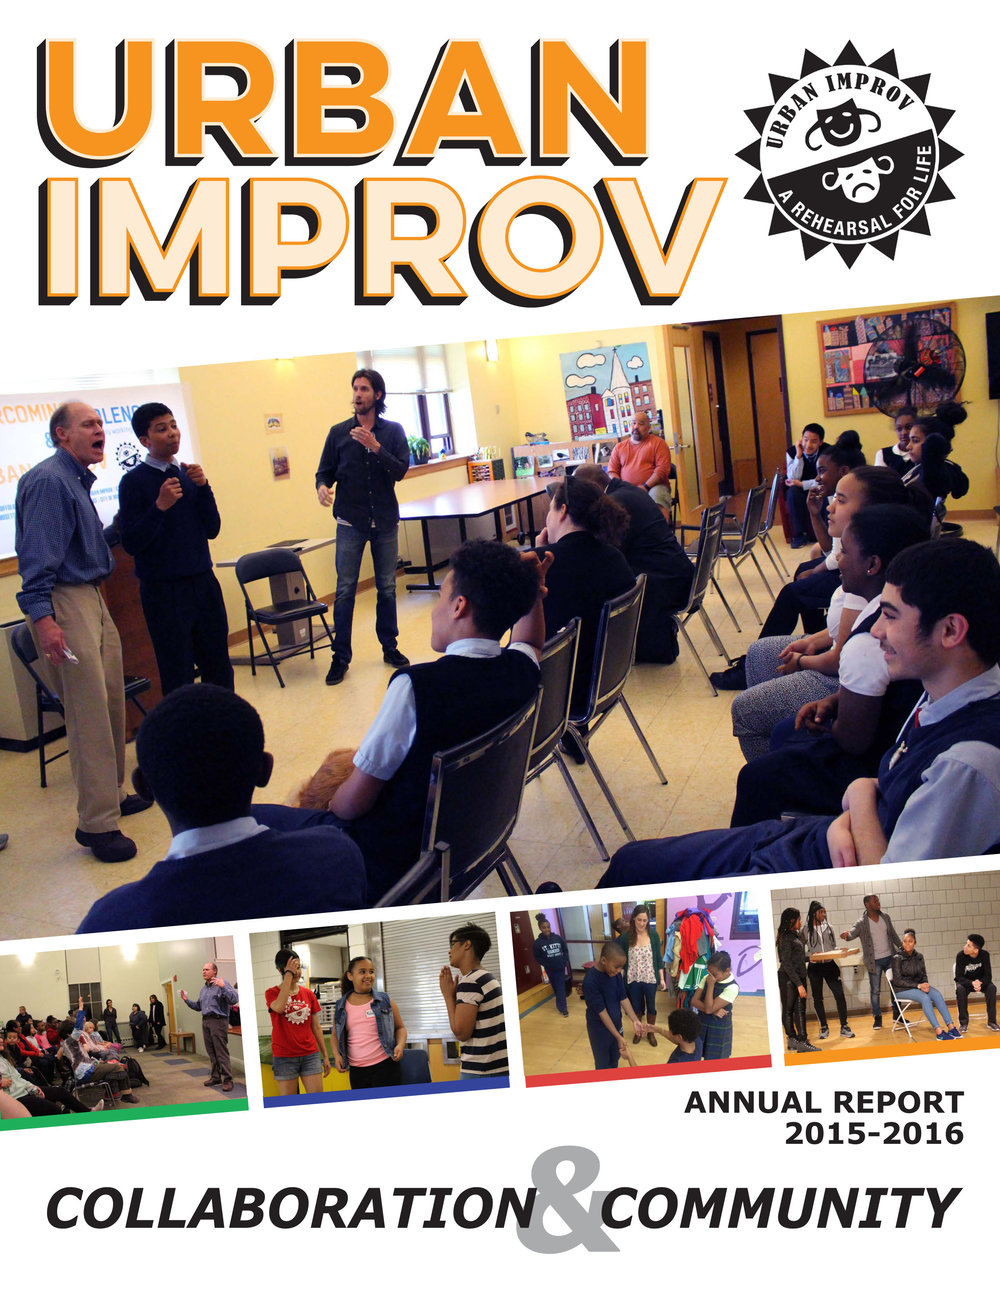 Download Urban Improv's 2016 Annual Report